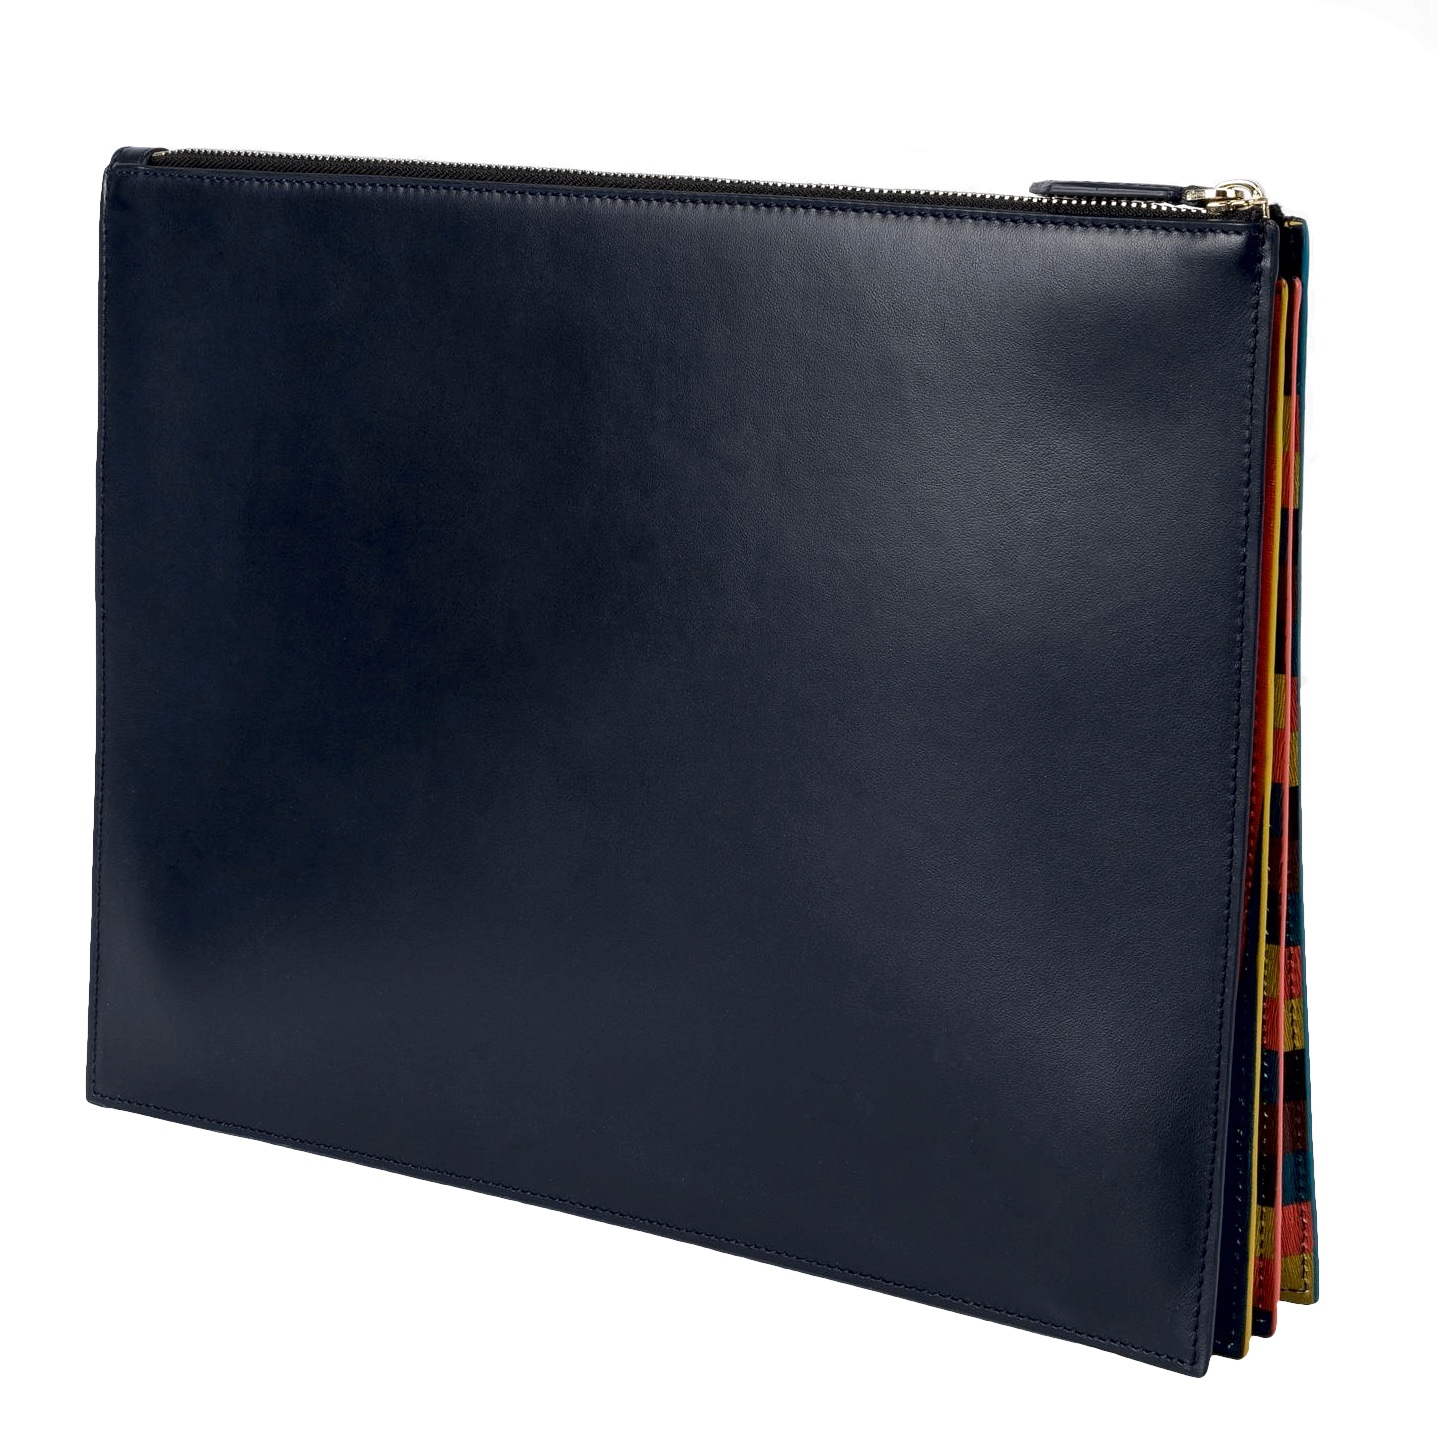 paul-smith-navy-Navy-Concertina-Bright-Stripe-Leather-Document-Pouch (4).jpg